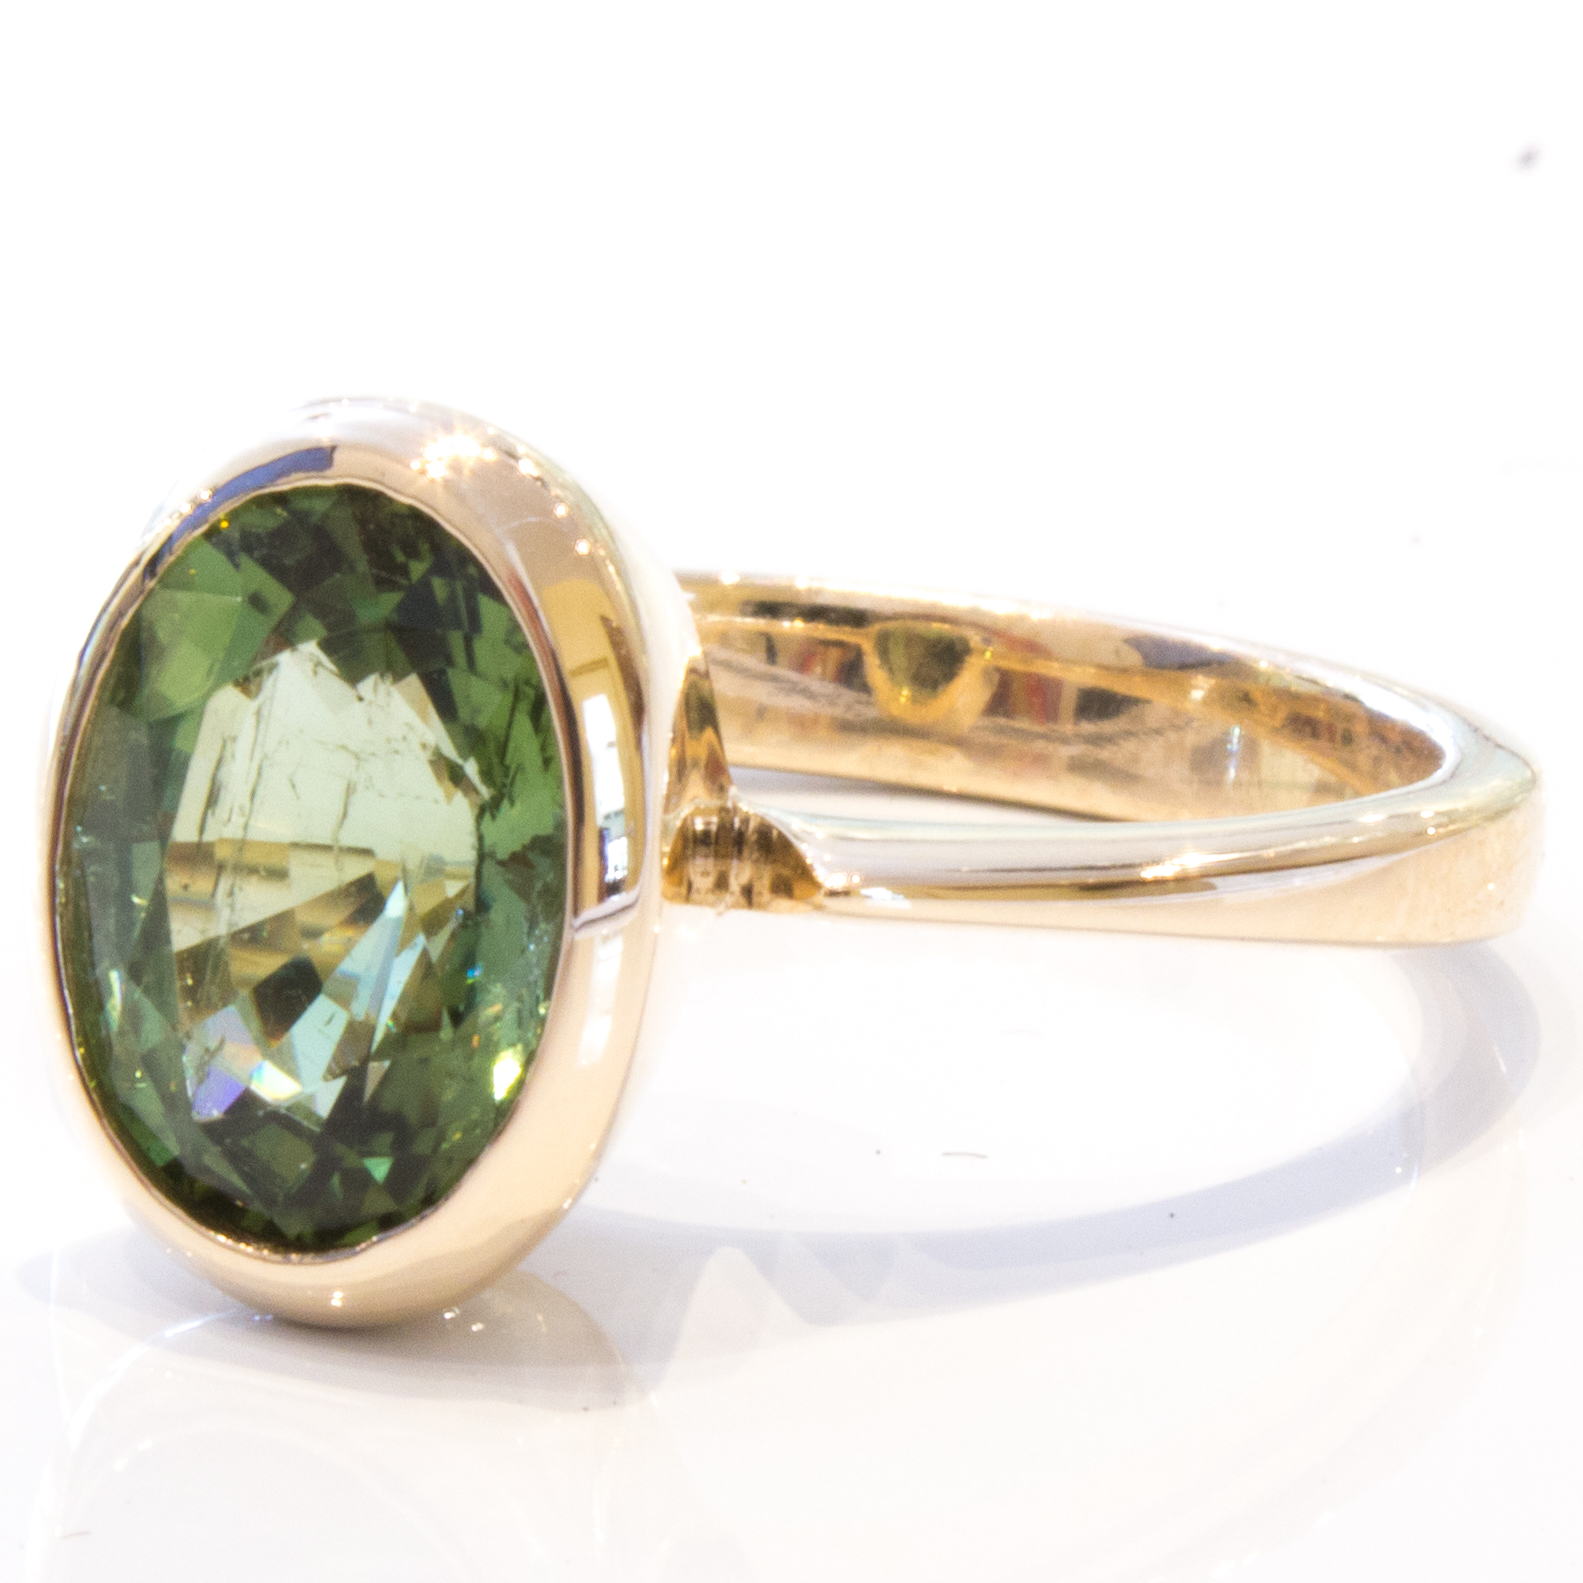 Green Tourmaline Handmade Gold Ring